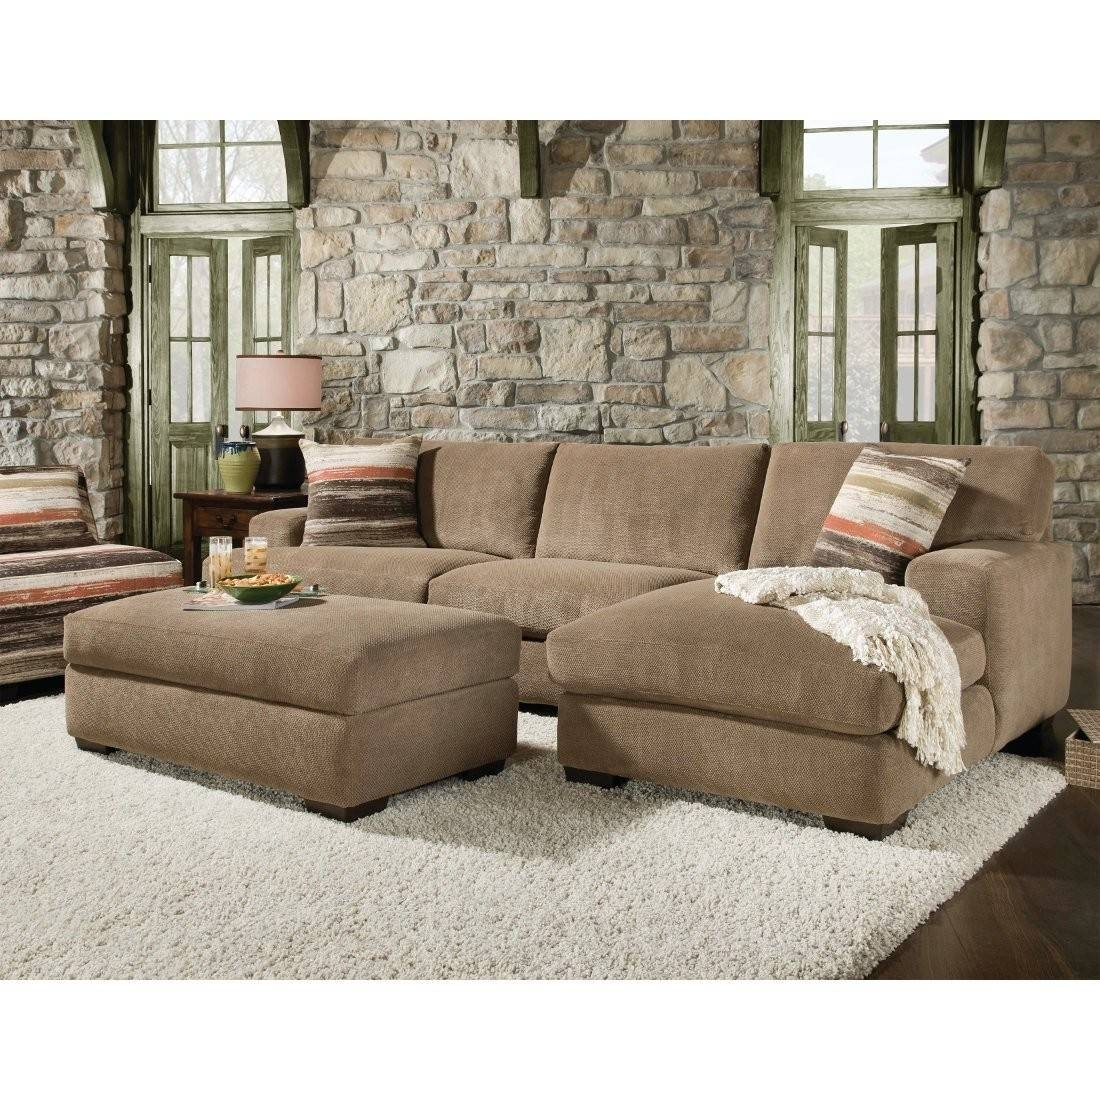 Wonderful Sectional Sofa With Chaise And Ottoman 61 For Your in Mitchell Gold Clifton Sectional Sofas (Image 15 of 15)